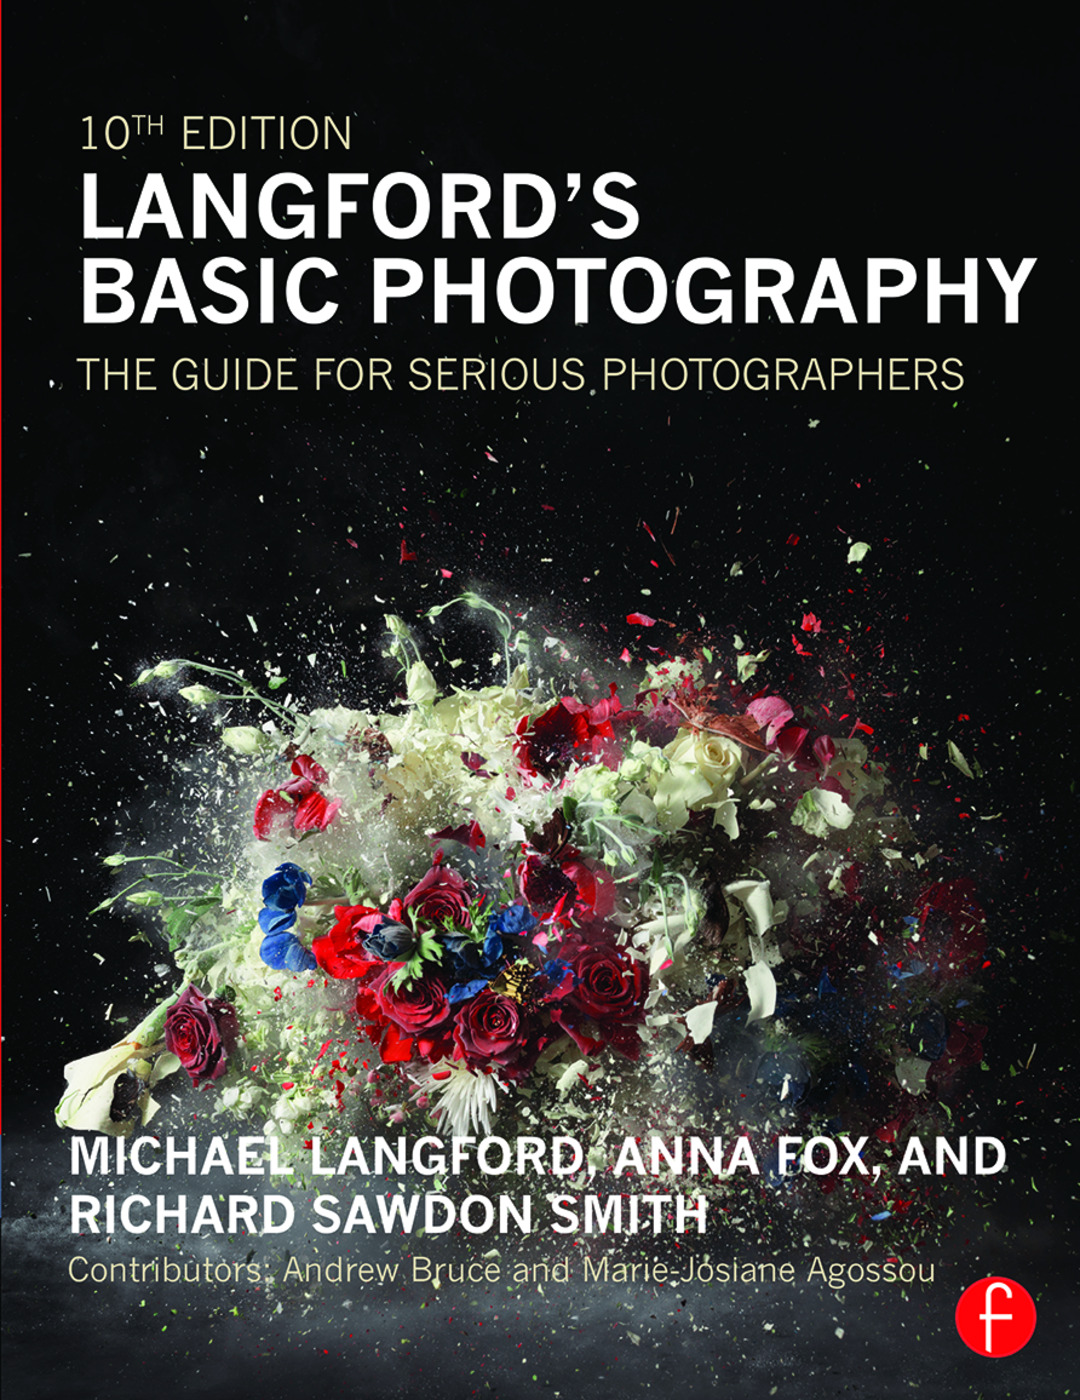 Langford's Basic Photography: The Guide for Serious Photographers book cover